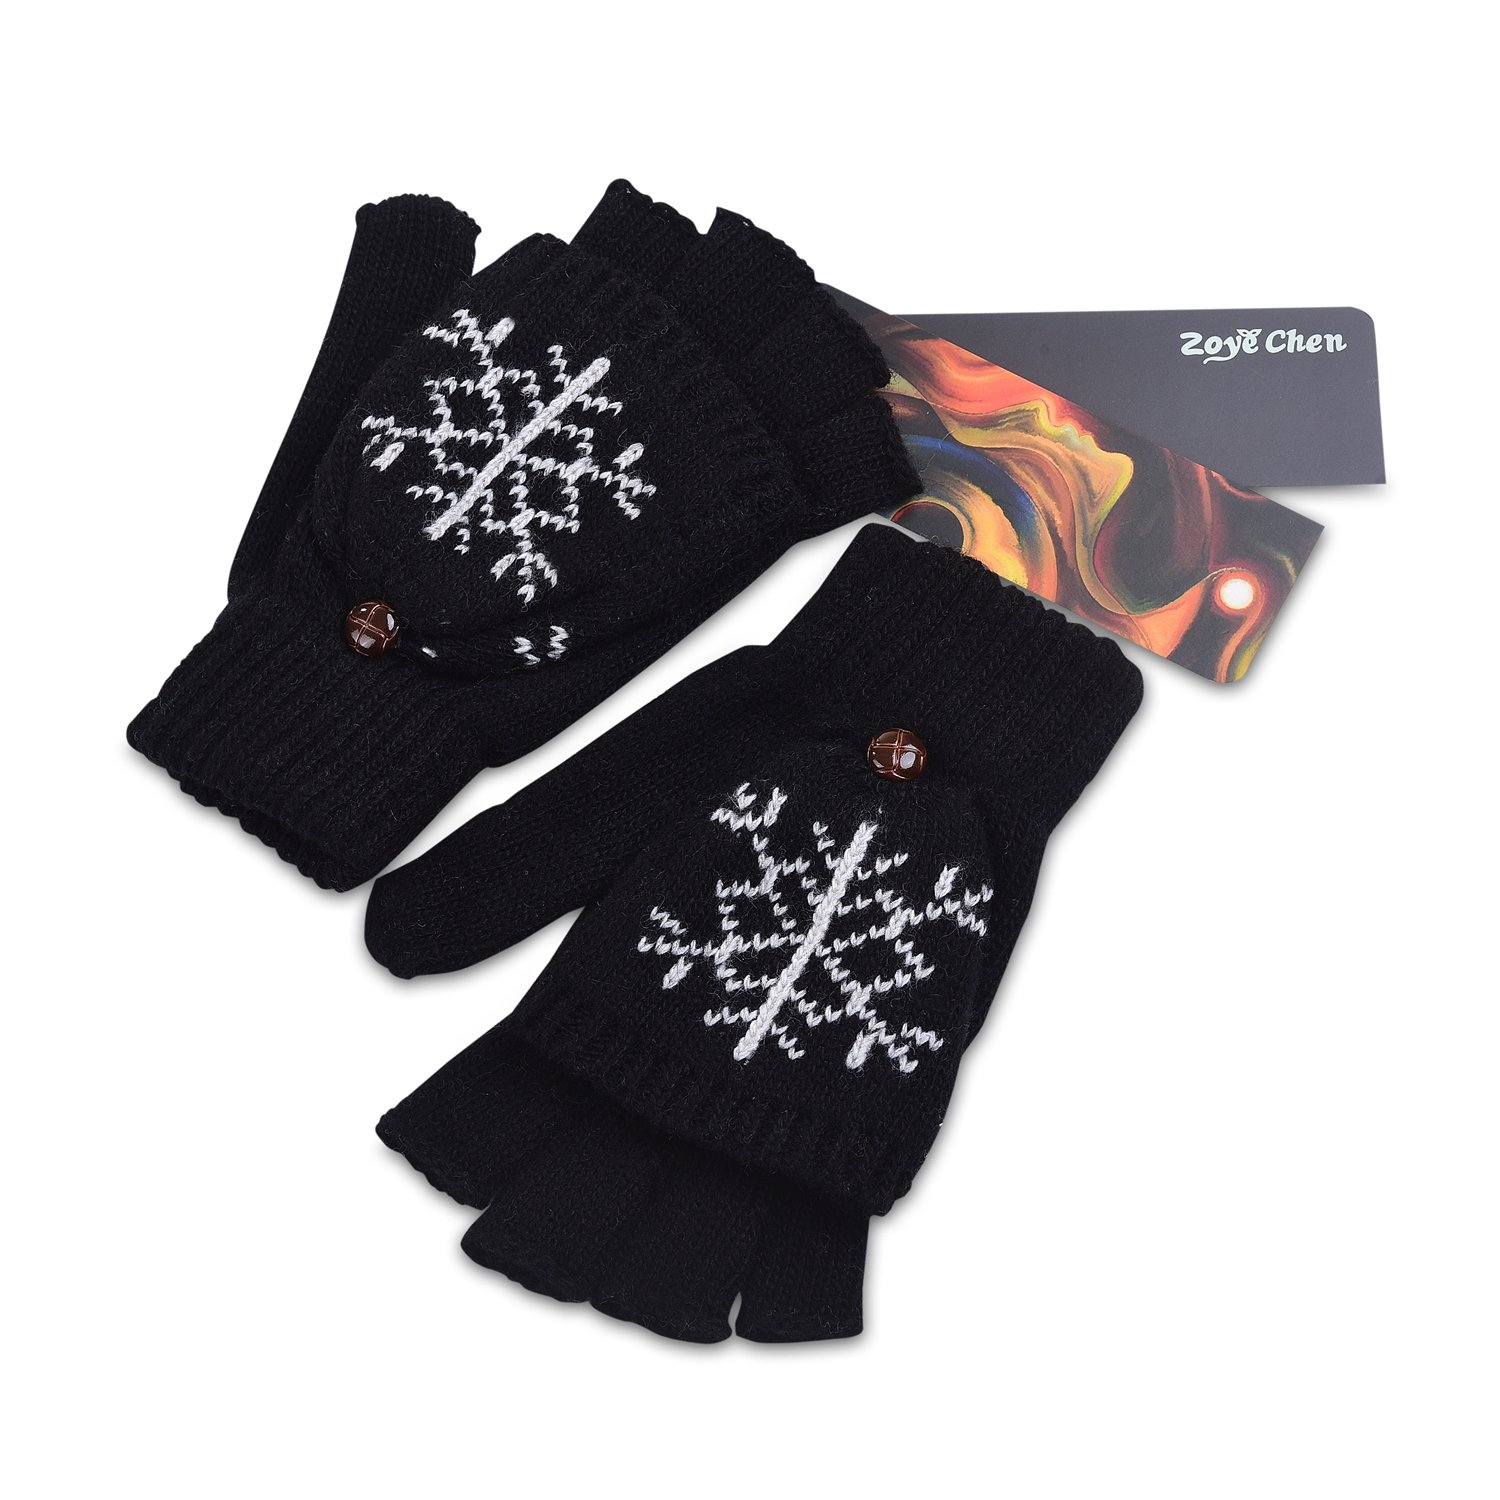 Winter's Thermal Insulation Mittens Warm Wool Knitted Convertible Fingerless Unisex Gloves (Black)